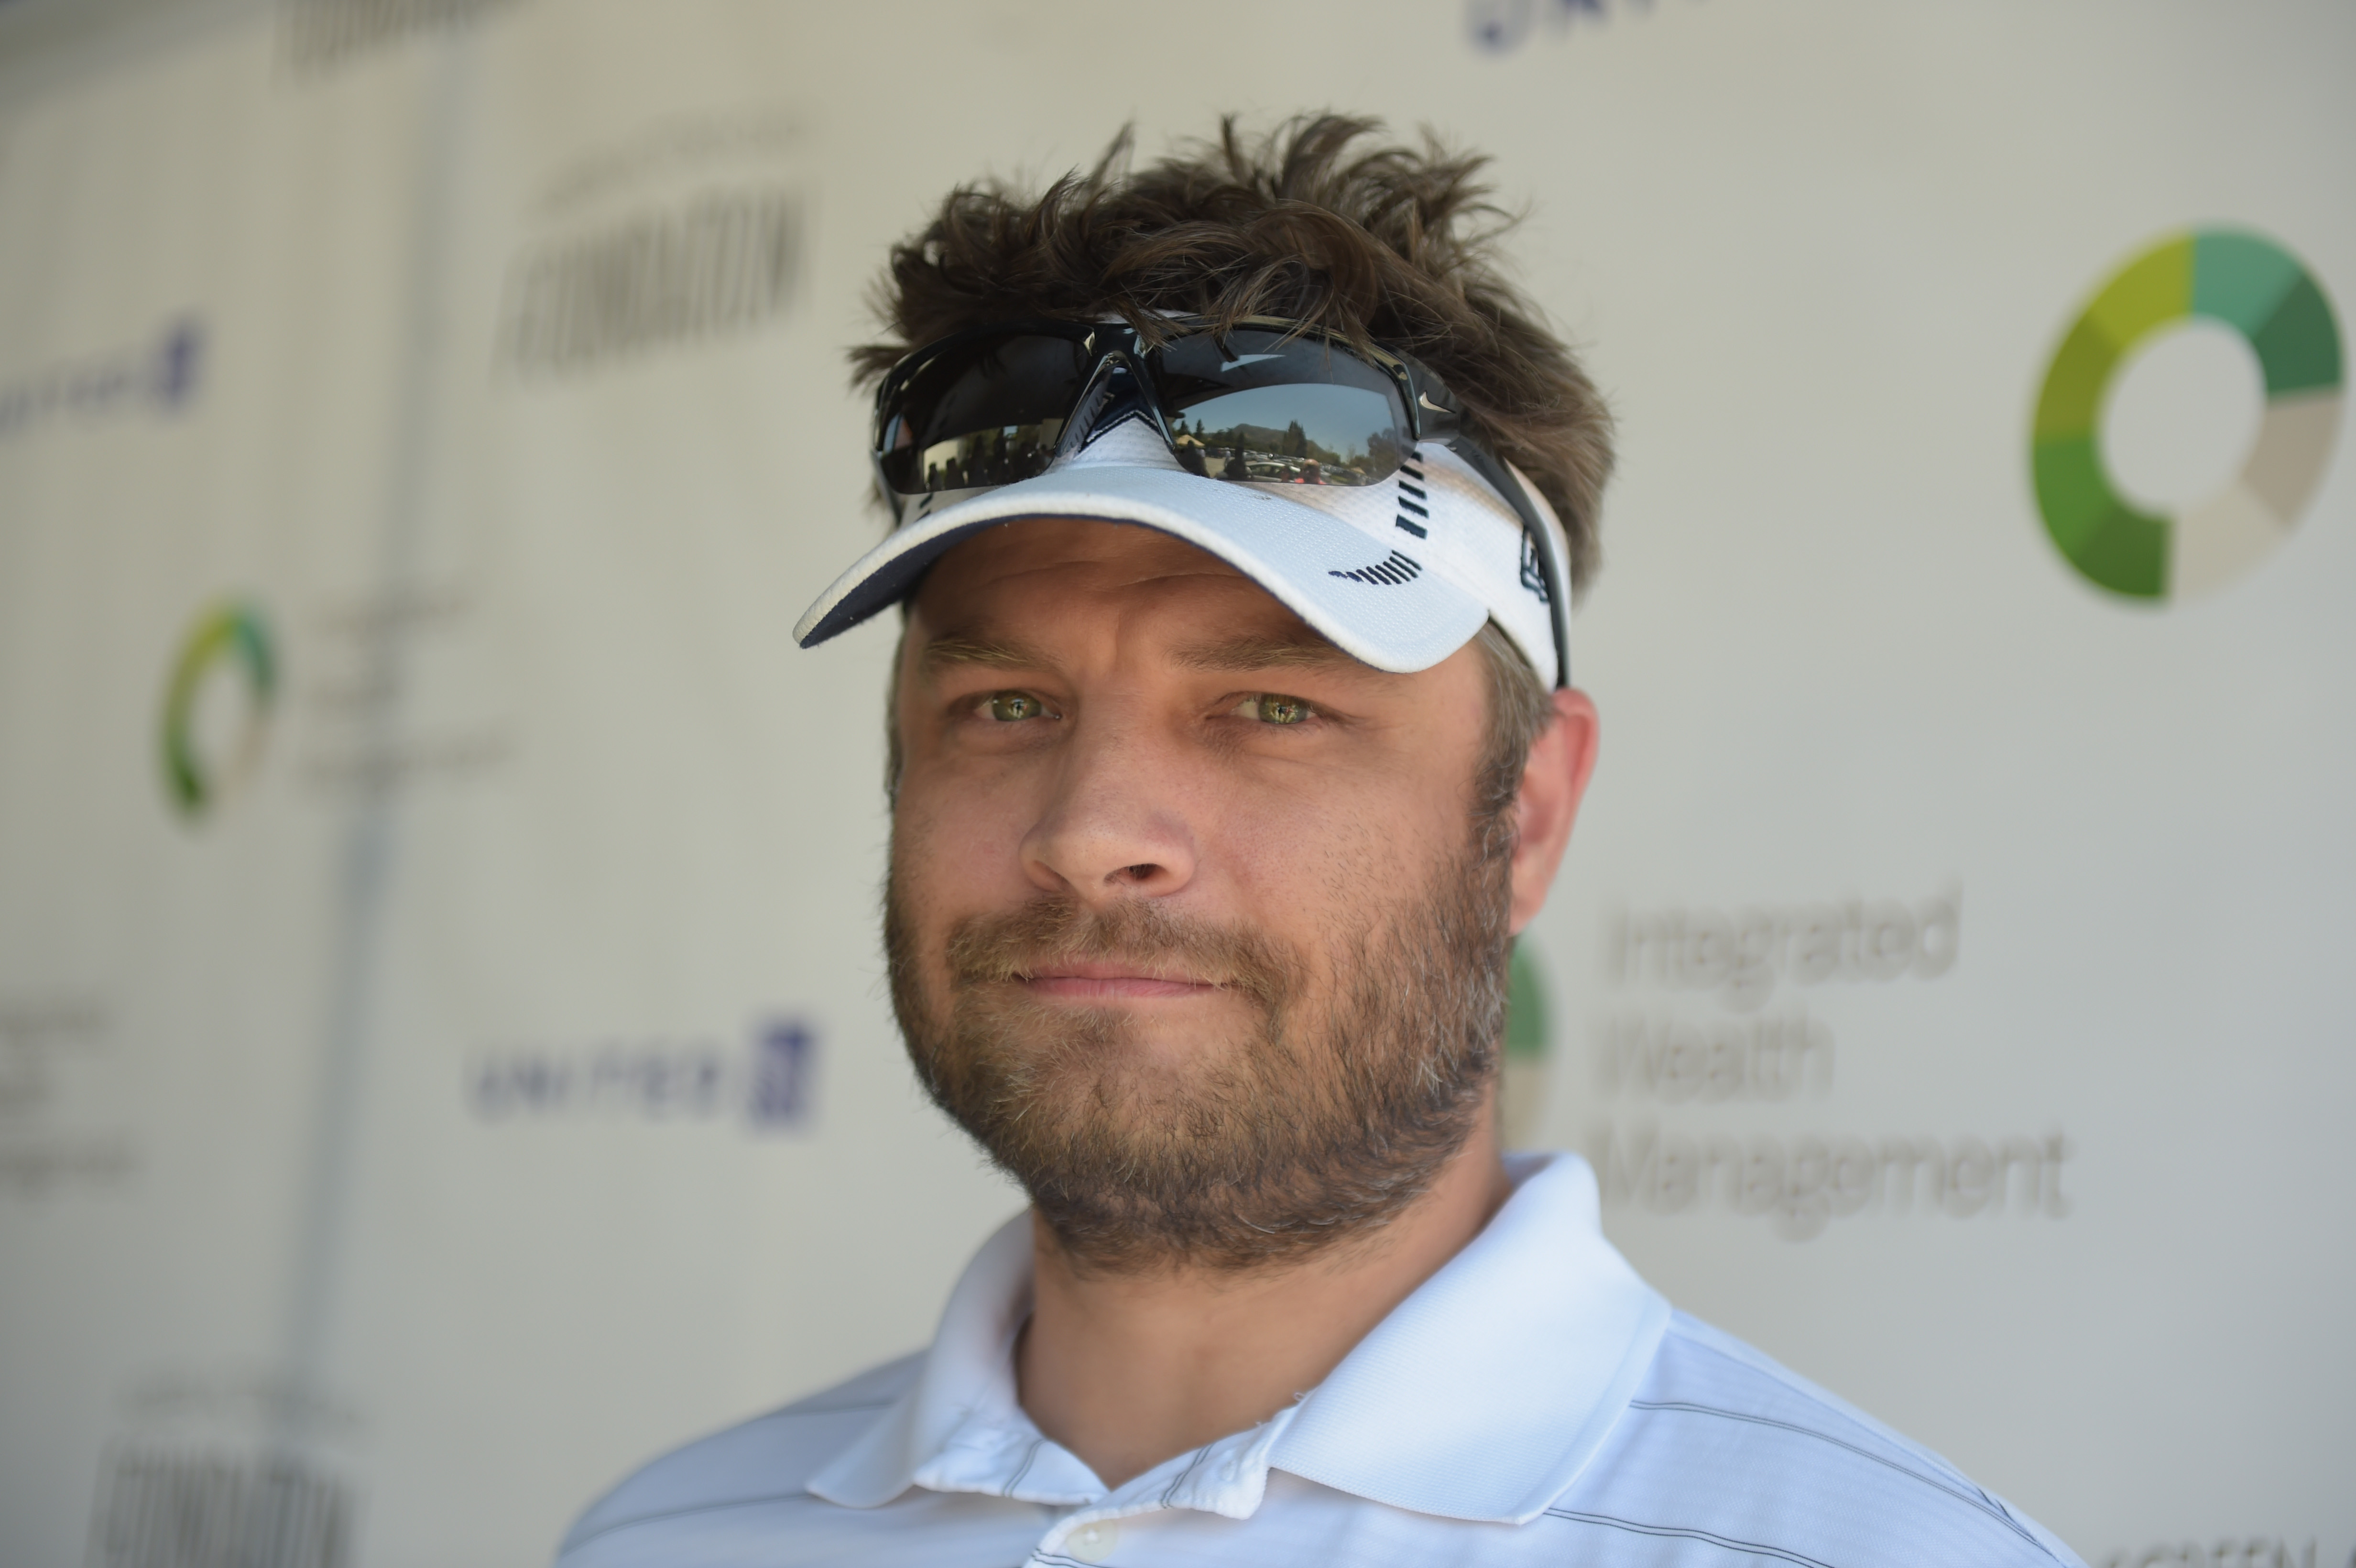 Actor Jay Ferguson attends the Screen Actors Guild Foundation's 6th Annual Los Angeles Golf Classic on June 8, 2015 in Burbank, California. (Photo by Jason Kempin/Getty Images for The Screen Actors Guild Foundation)